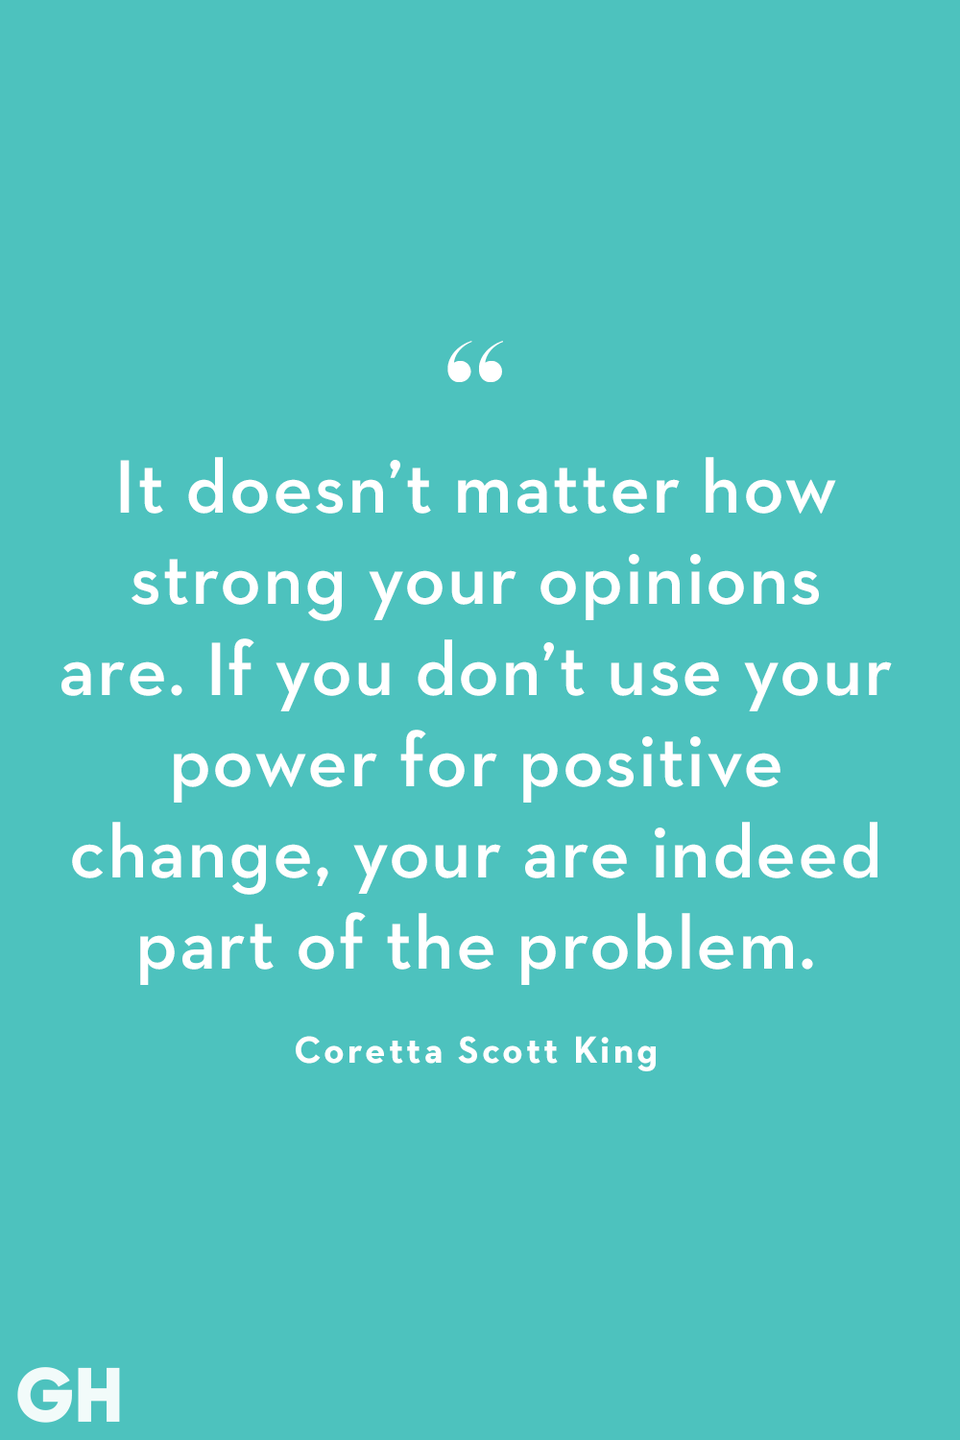 <p>It doesn't matter how strong your opinion are. If you don't use your power for positive change, you are indeed part of the problem. </p>